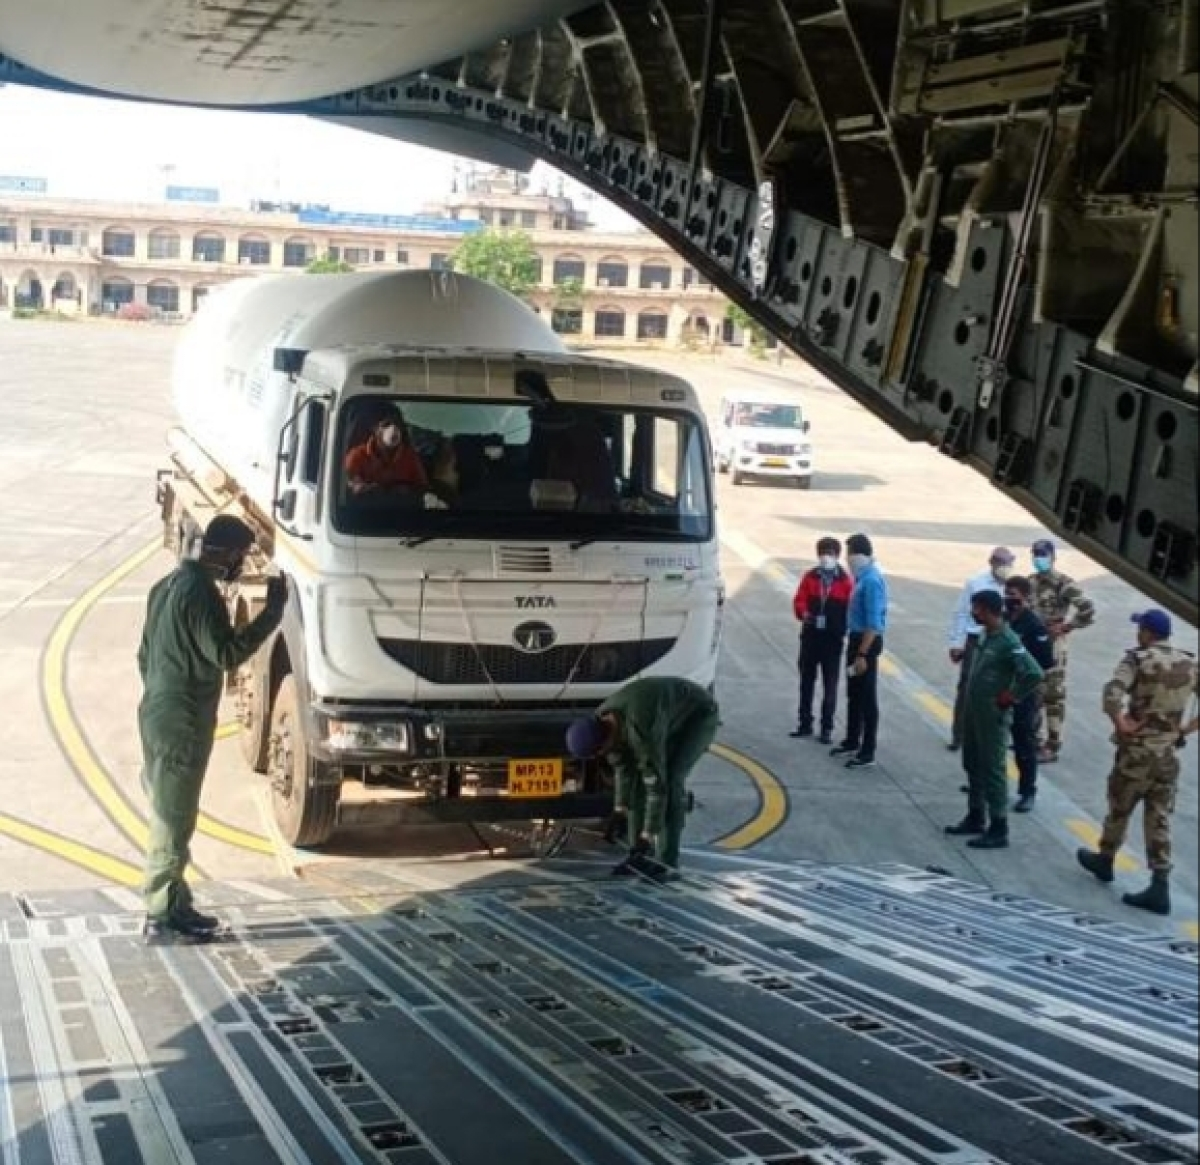 Madhya Pradesh: For the 6th day in a row, two empty oxygen tankers airlifted